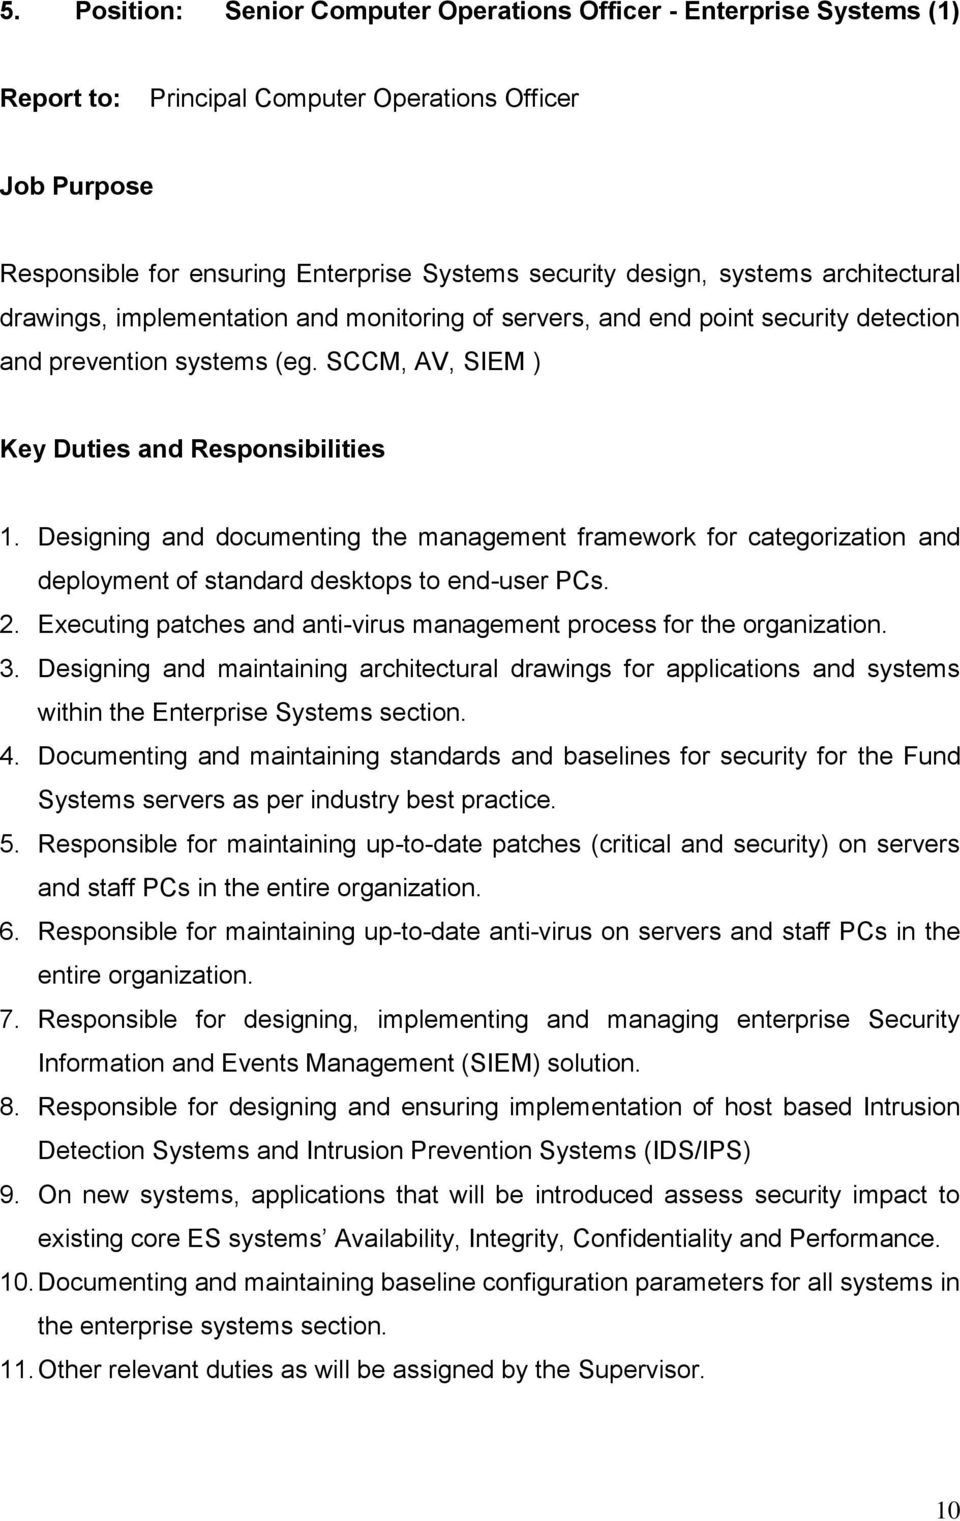 Designing and documenting the management framework for categorization and deployment of standard desktops to end-user PCs. 2. Executing patches and anti-virus management process for the organization.